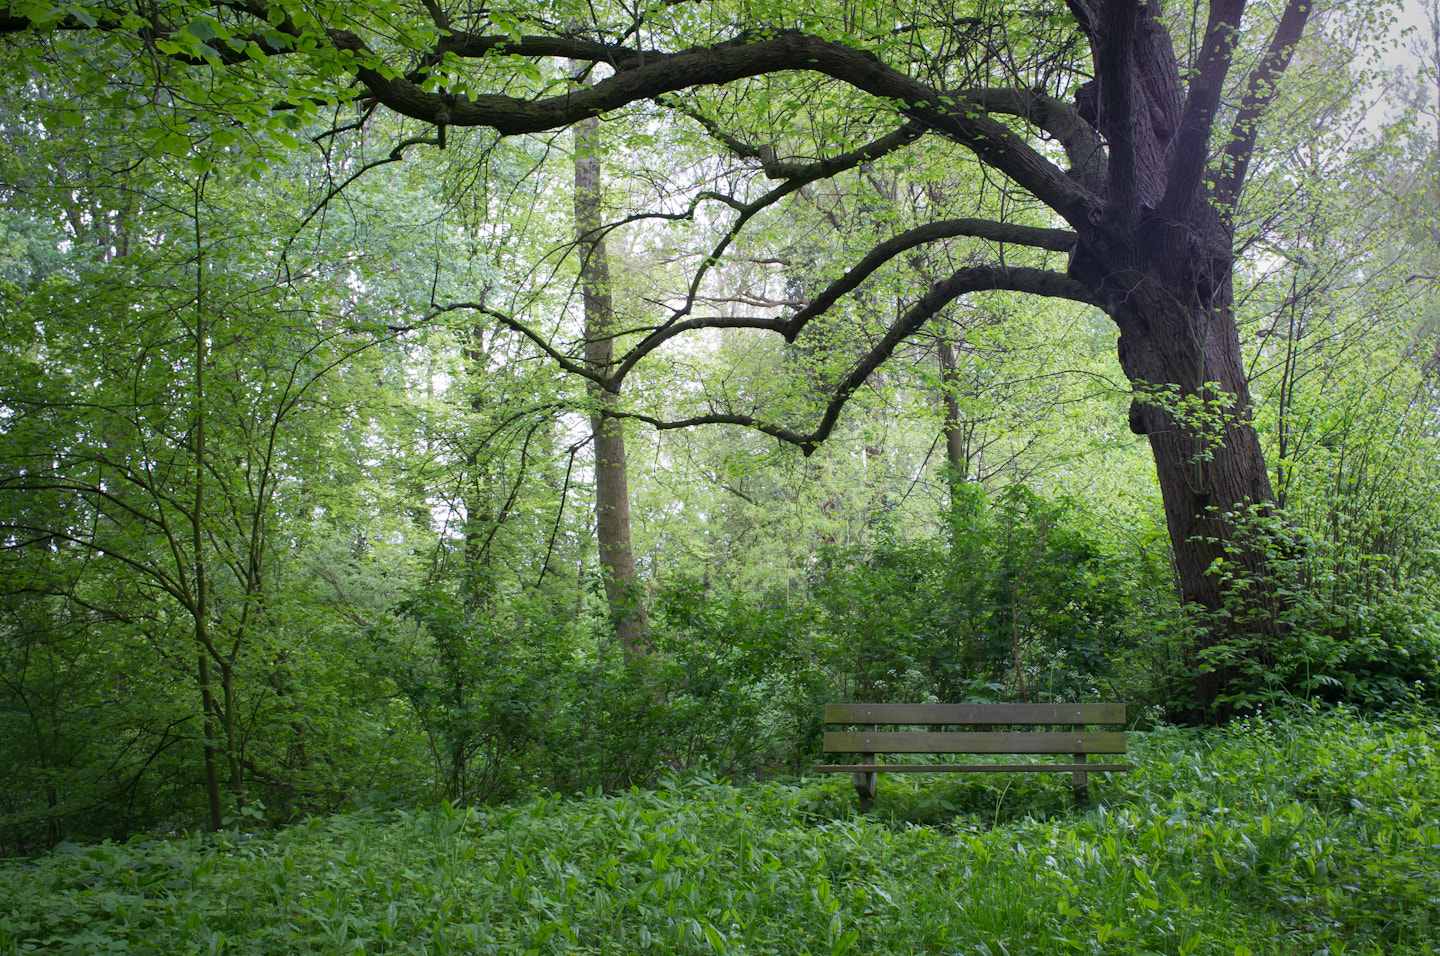 Photograph In the Forest by Edwin van Nuil on 500px